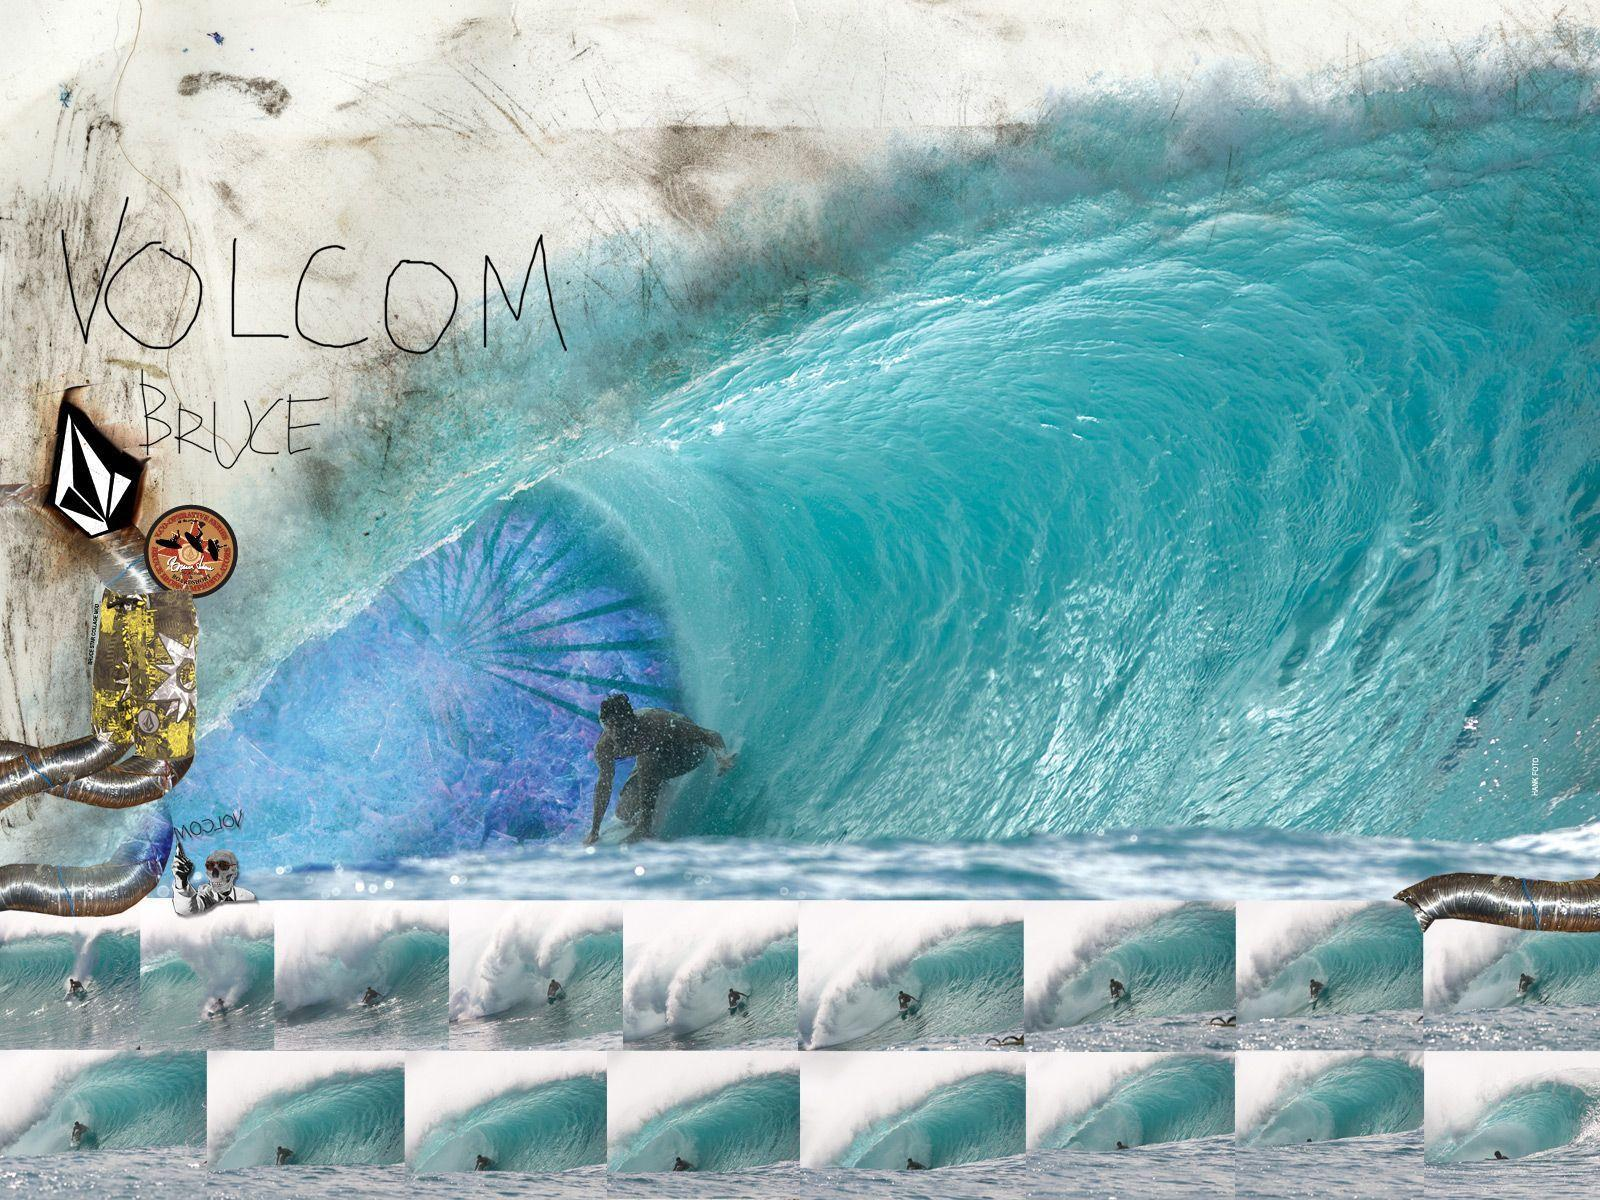 Wallpapers Volcom 2015 - Wallpaper Cave